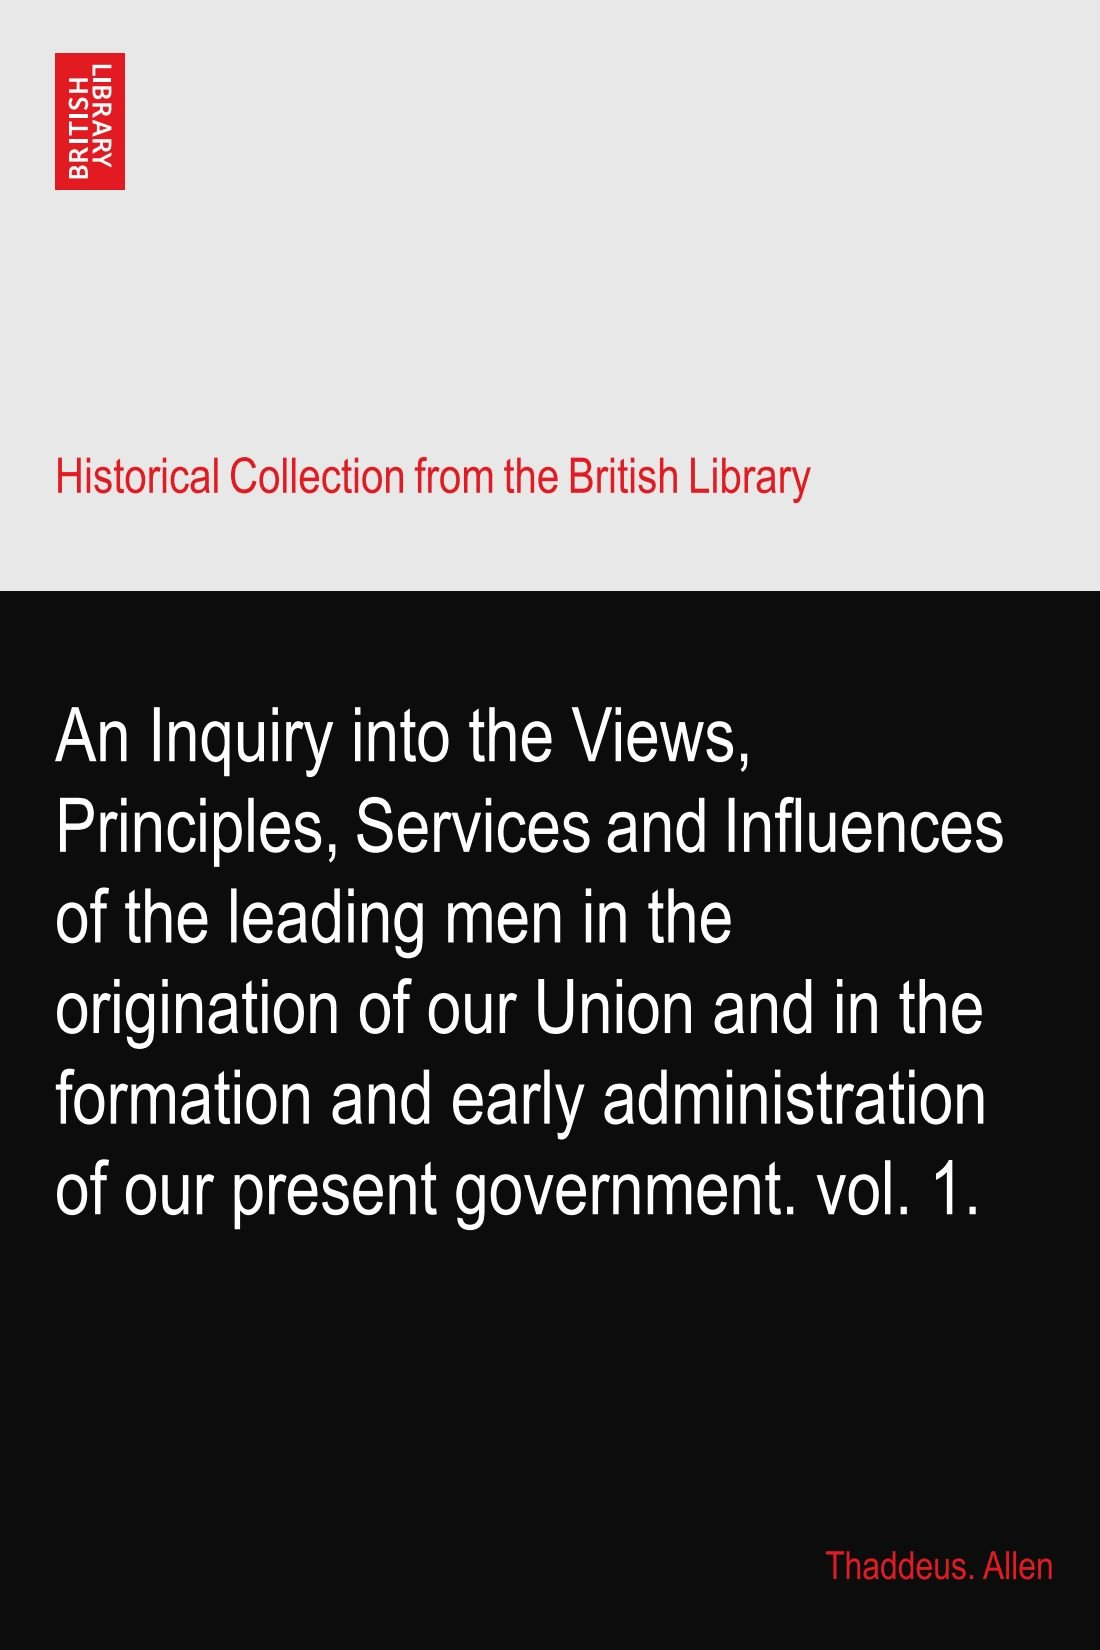 An Inquiry into the Views, Principles, Services and Influences of the leading men in the origination of our Union and in the formation and early administration of our present government. vol. 1. pdf epub